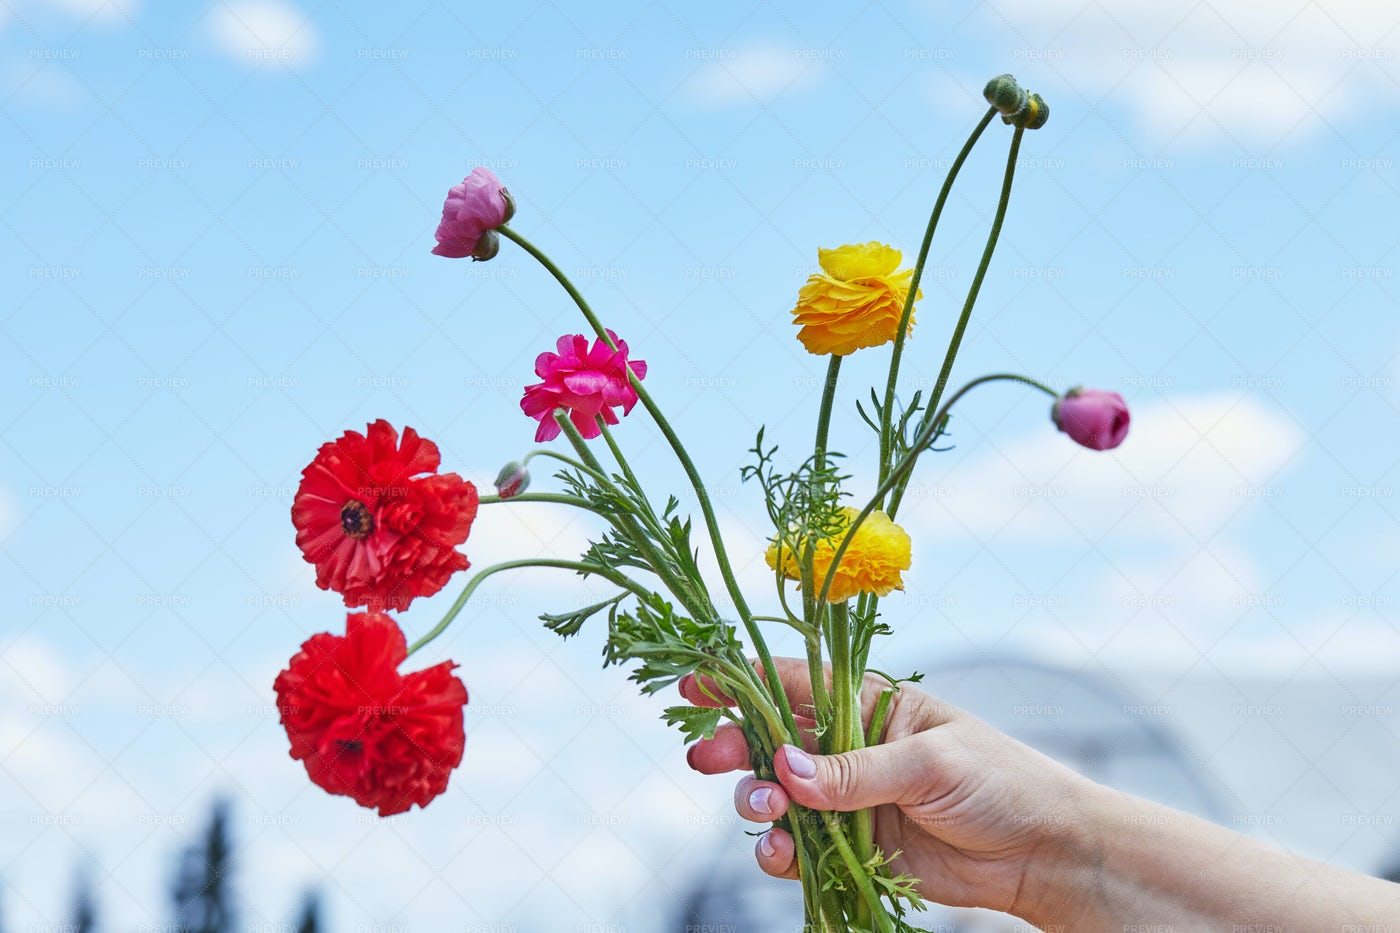 Woman's Hand Holding Bouquet: Stock Photos